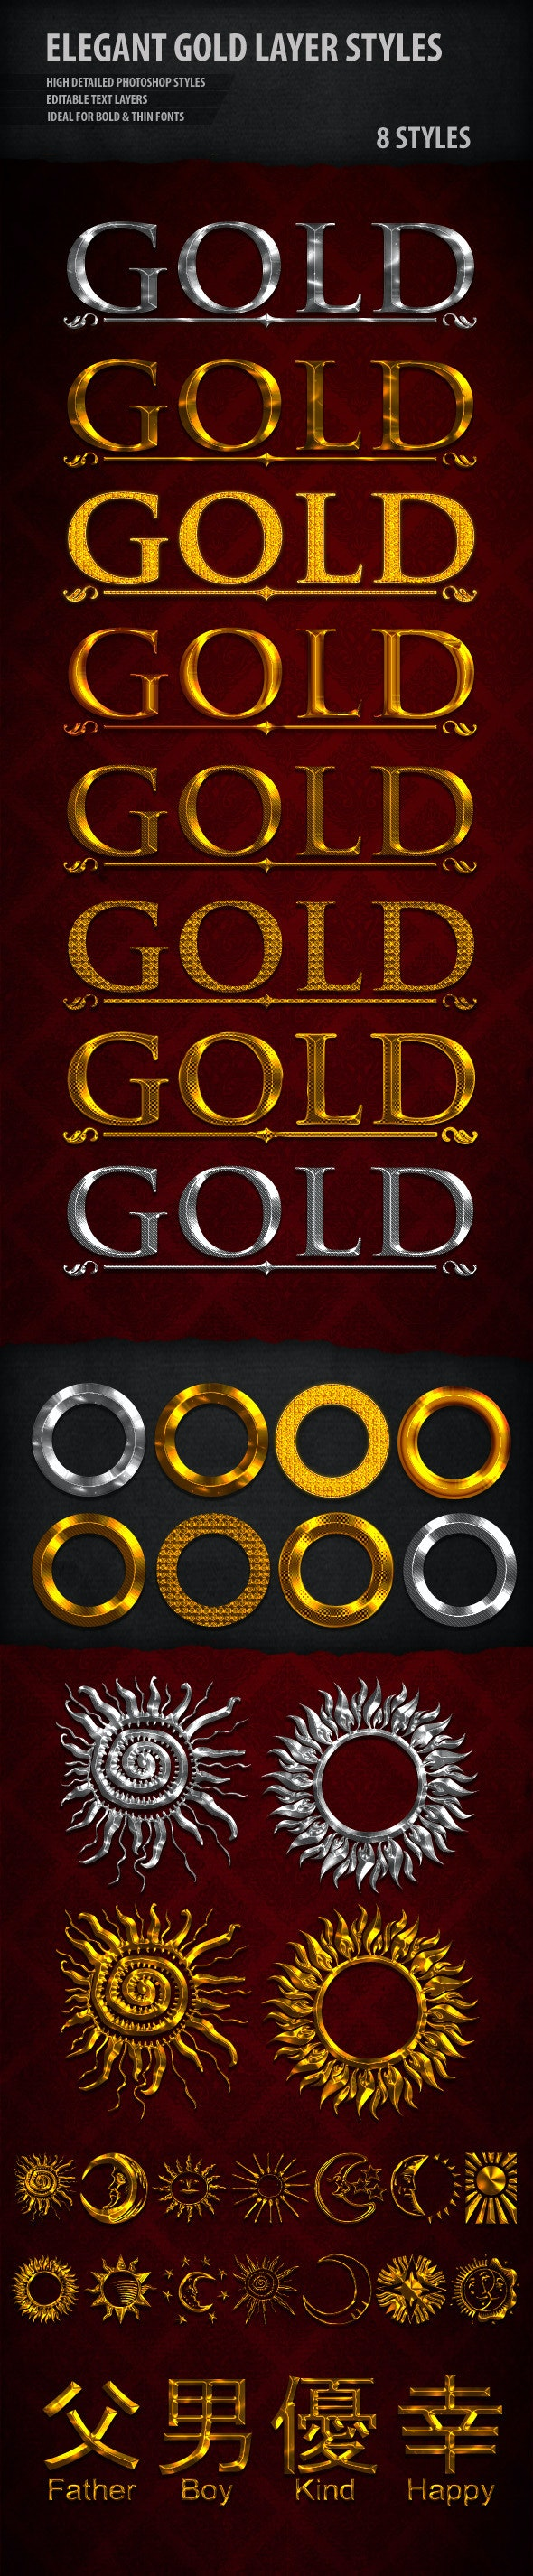 Elegant Gold & Silver Text Styles - Text Effects Styles